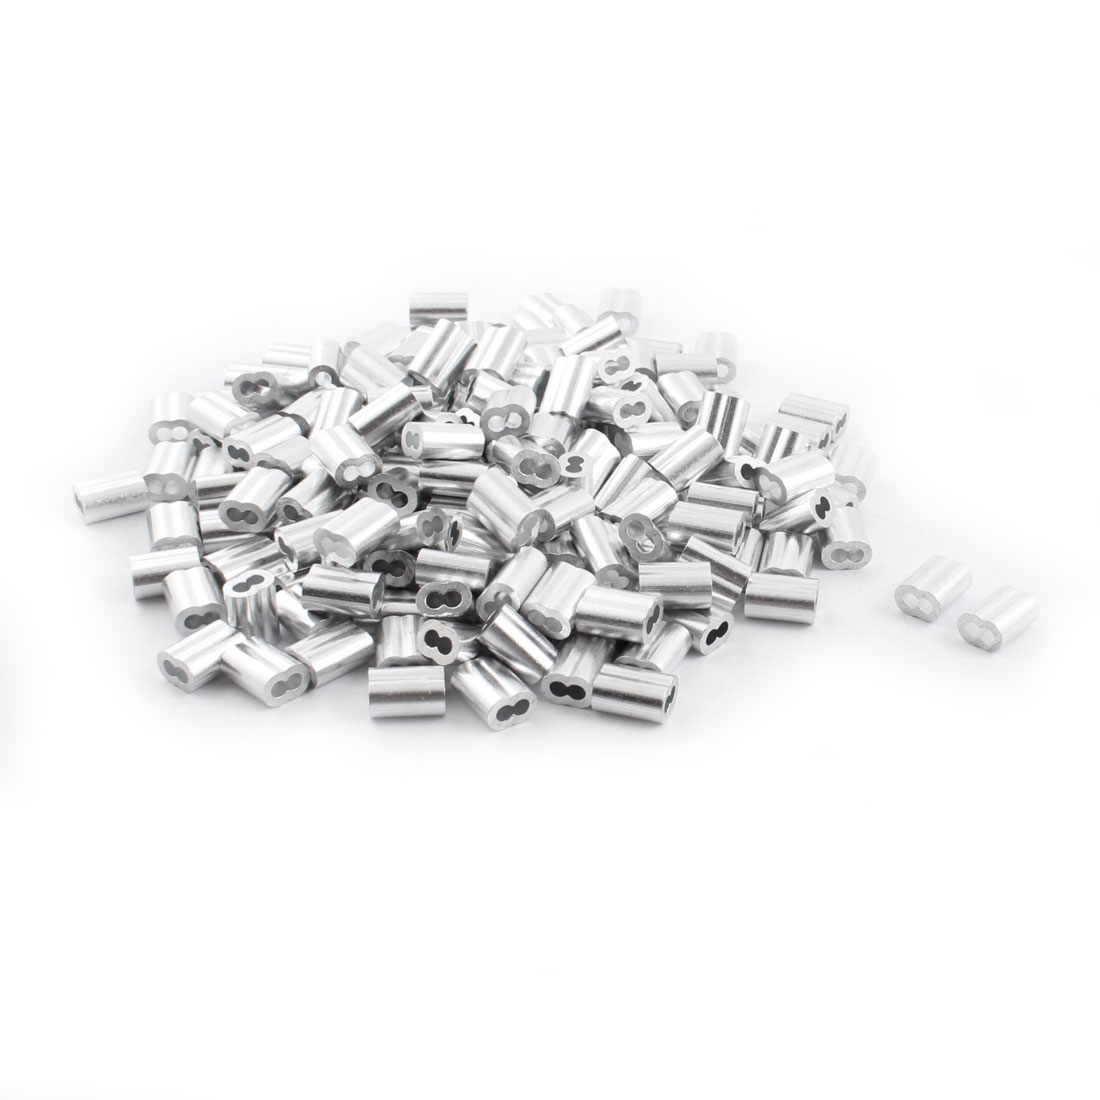 "200Pcs 1/8""x 1/2"" Aluminum Hourglass Ferrules Sleeve Crimp for 2.5mm Wire Rope"